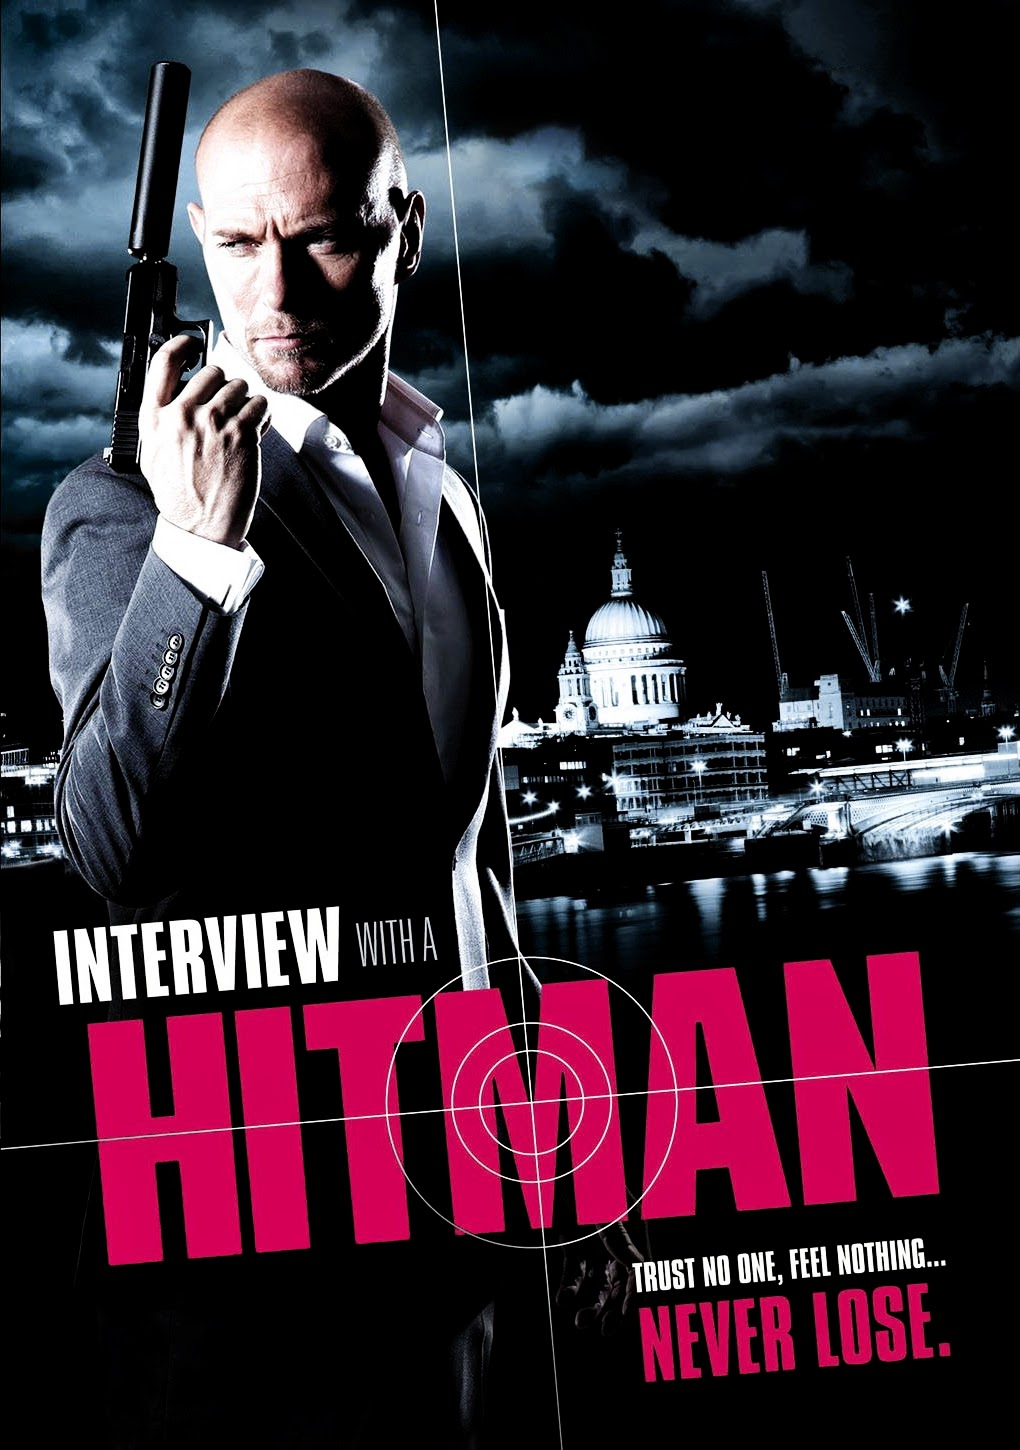 Interview With A Hitman 2012 ταινιες online seires xrysoi greek subs